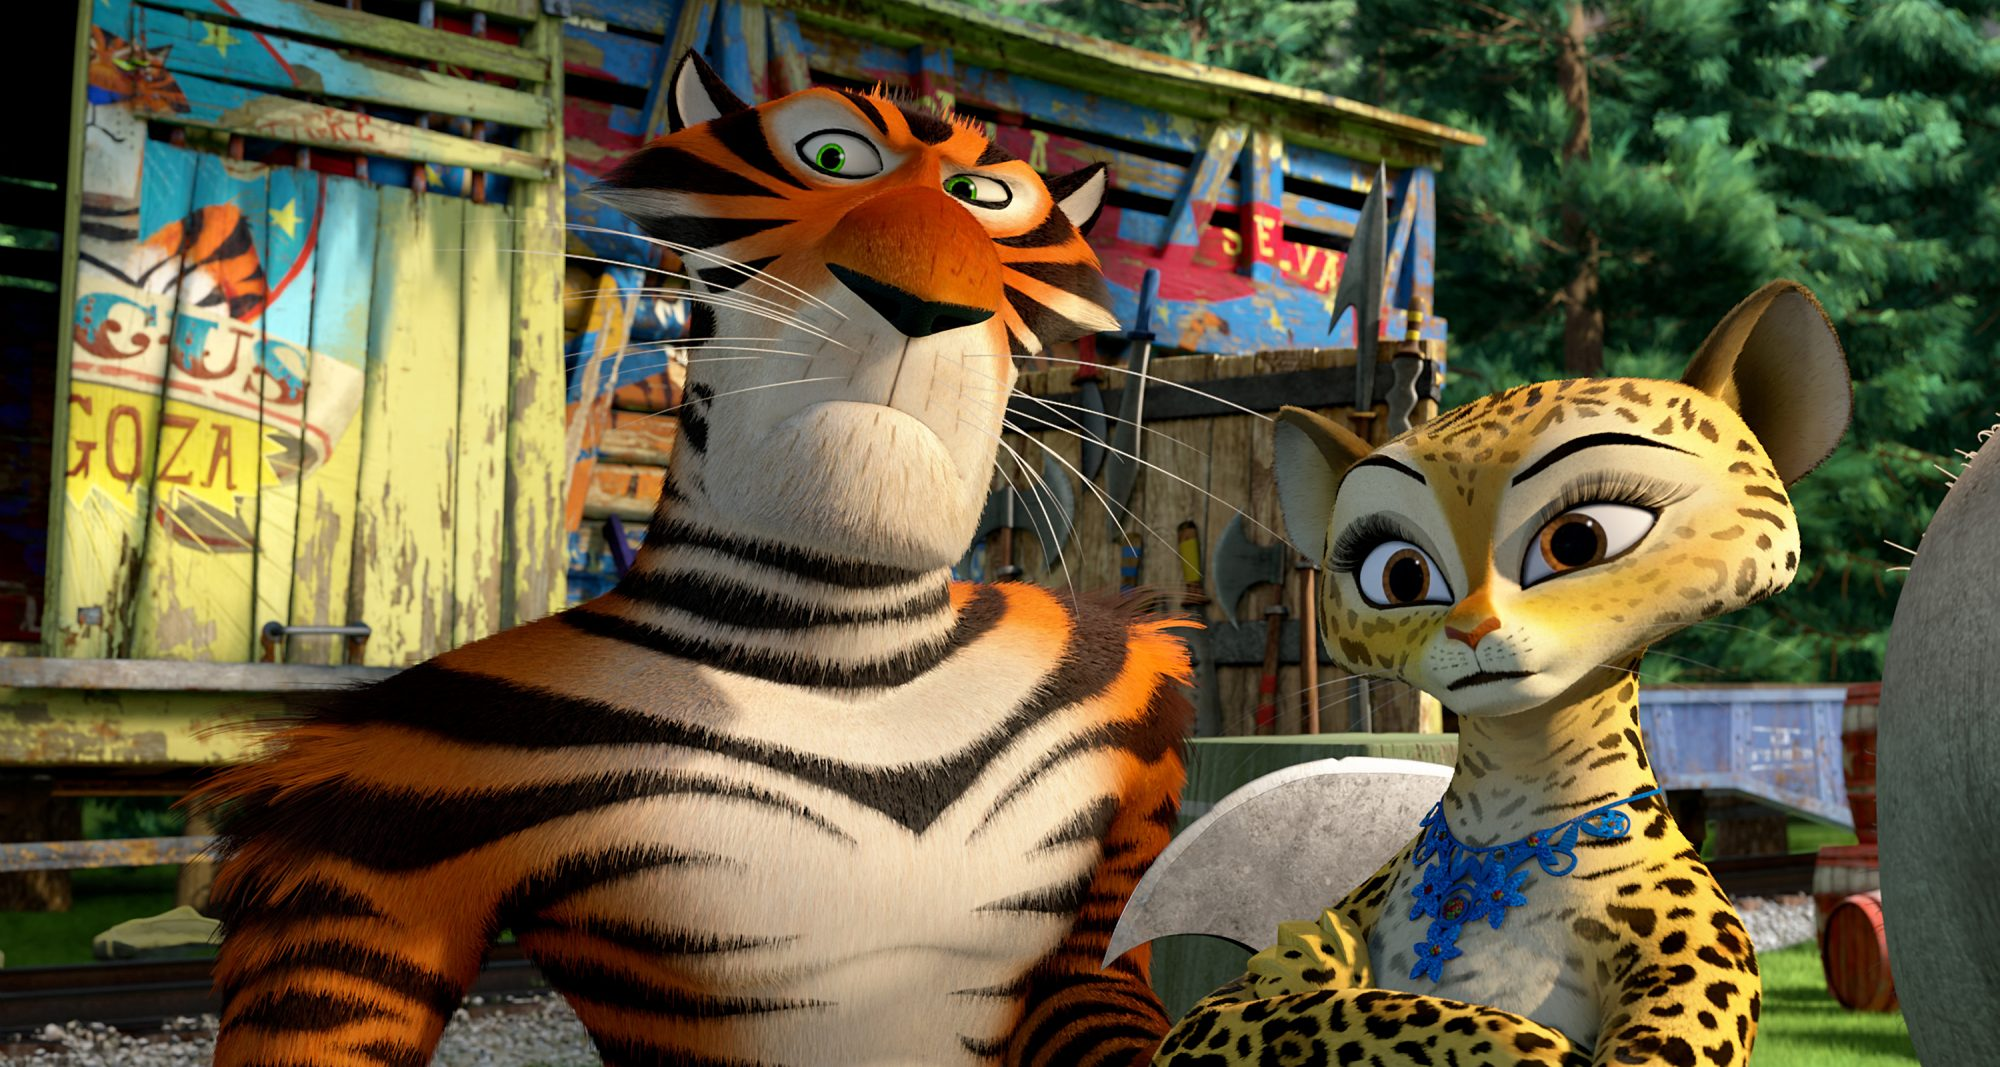 MADAGASCAR 3: EUROPE'S MOST WANTED, from left: Vitaly (voice: Bryan Cranston), Gia (voice: Jessica C